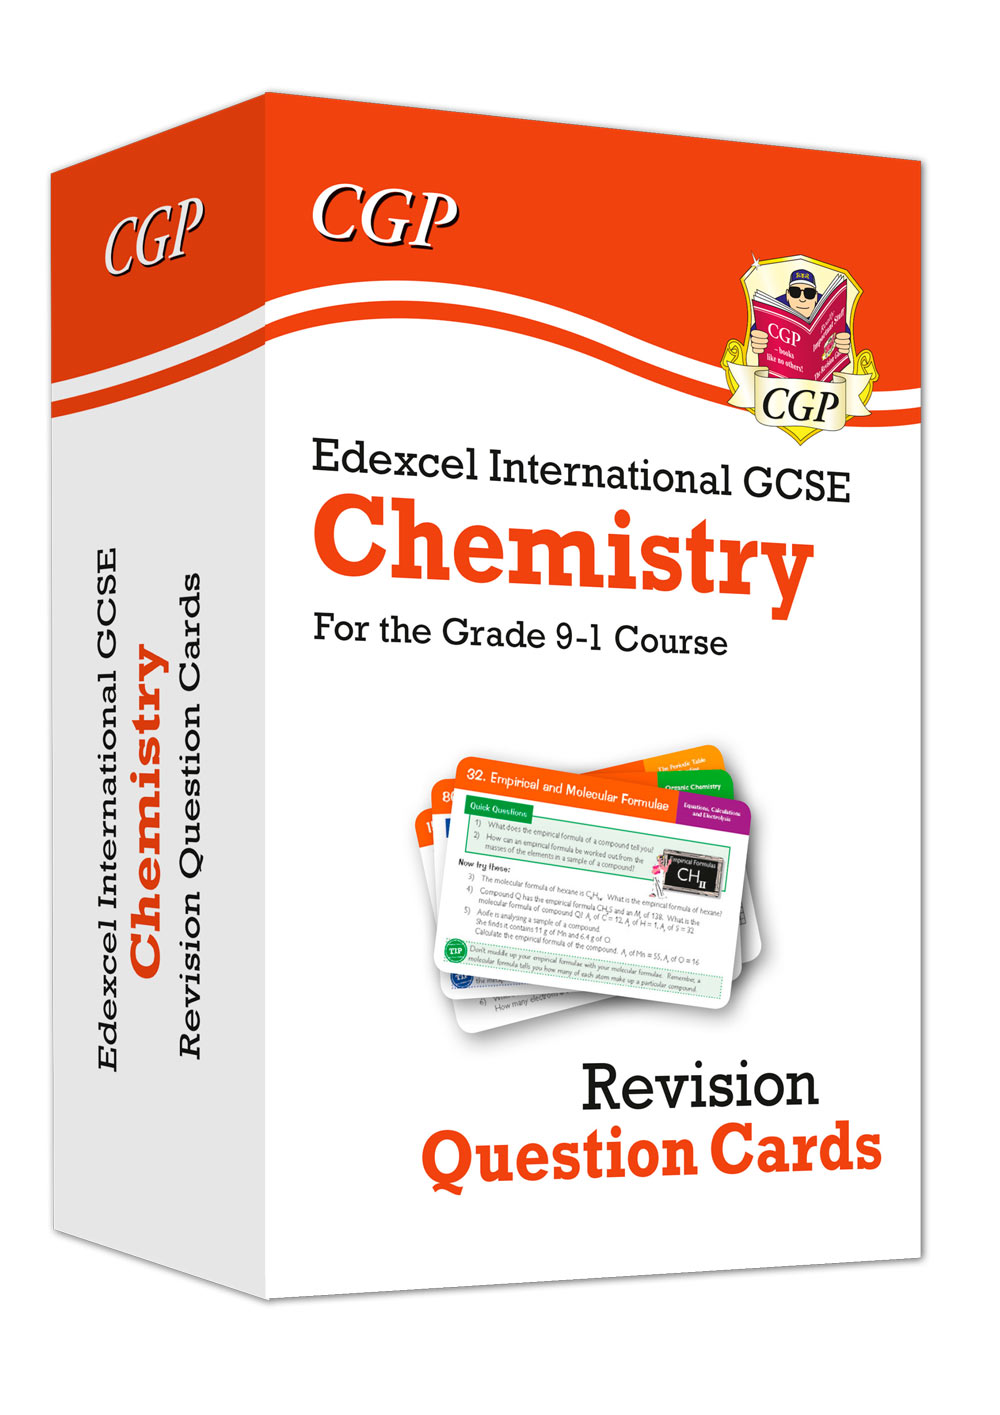 CEFI41 - New Grade 9-1 Edexcel International GCSE Chemistry: Revision Question Cards